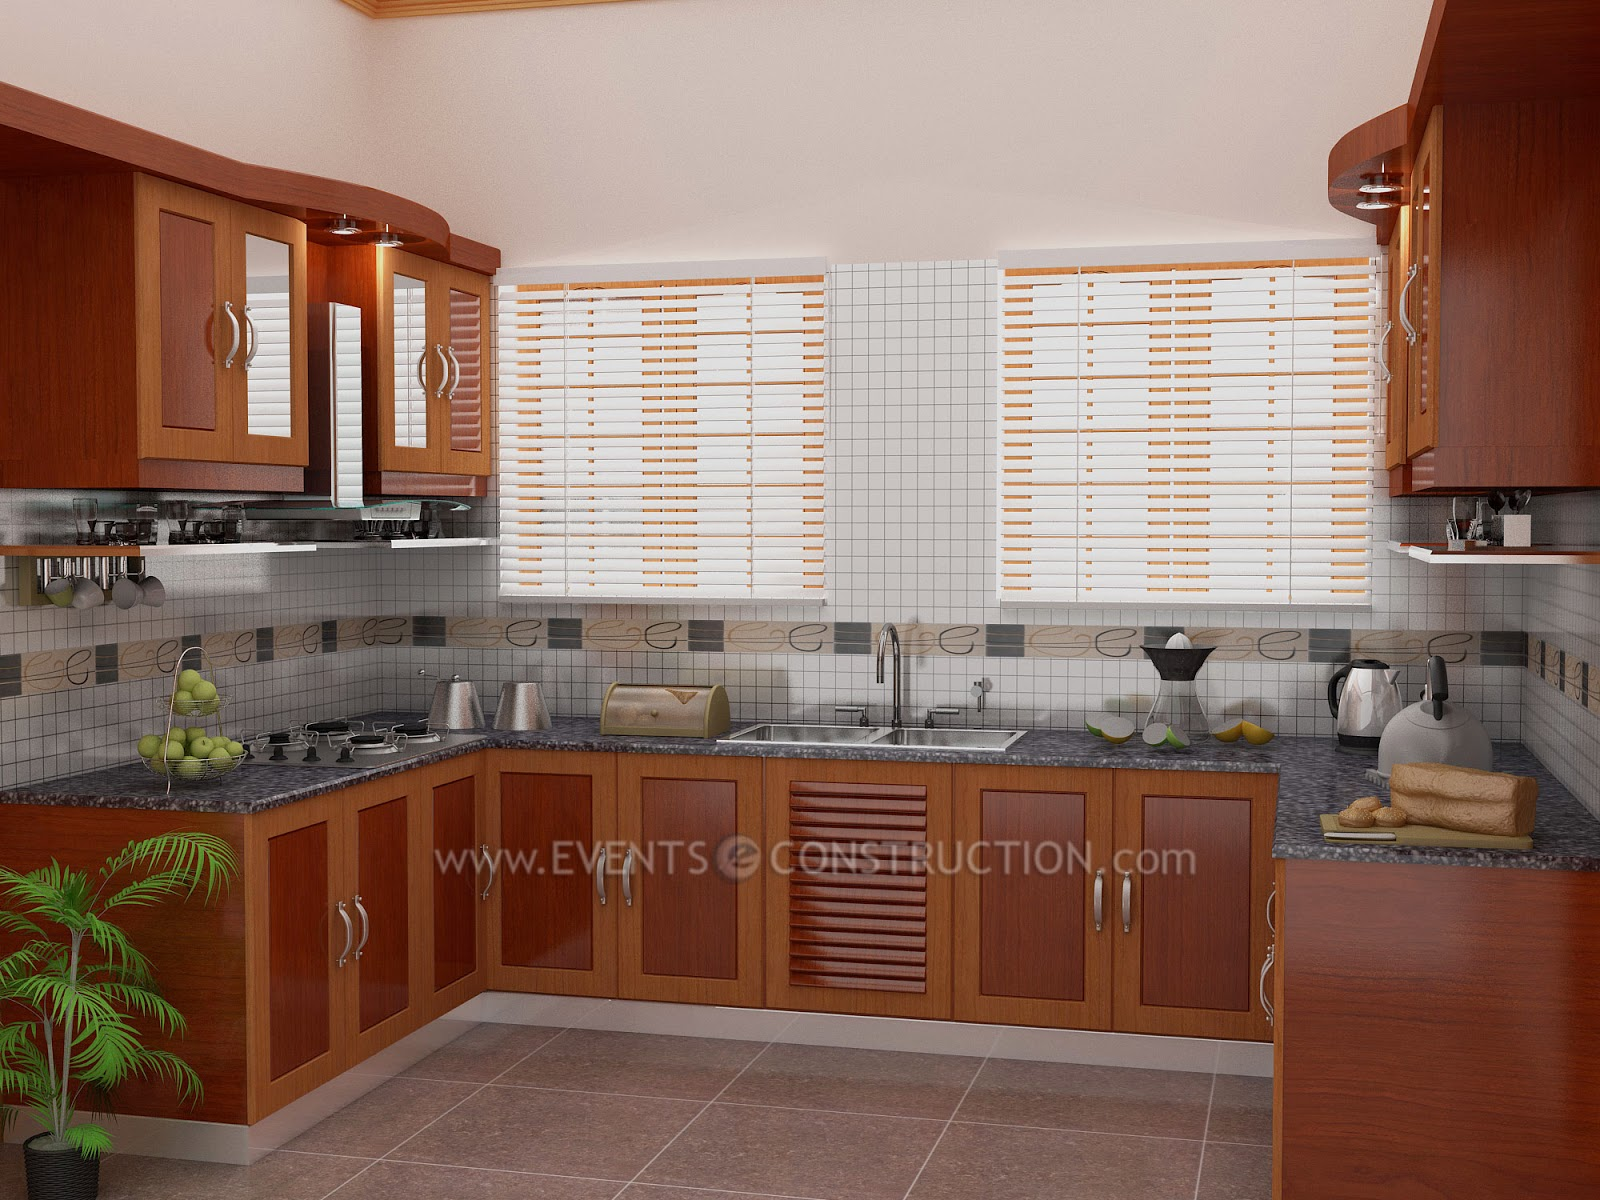 Evens construction pvt ltd simple kerala kitchen design for Bathroom interior design kerala